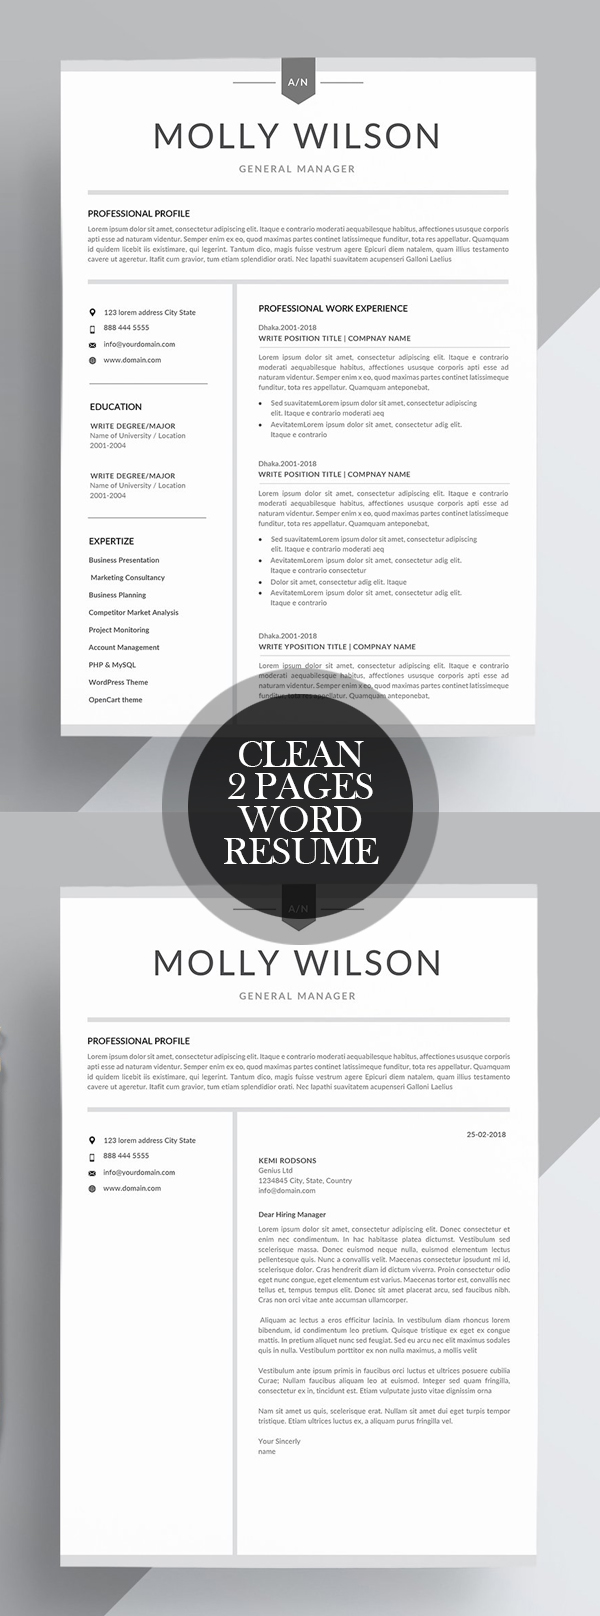 Clean 2 Page Word Resume Template #resumedesign